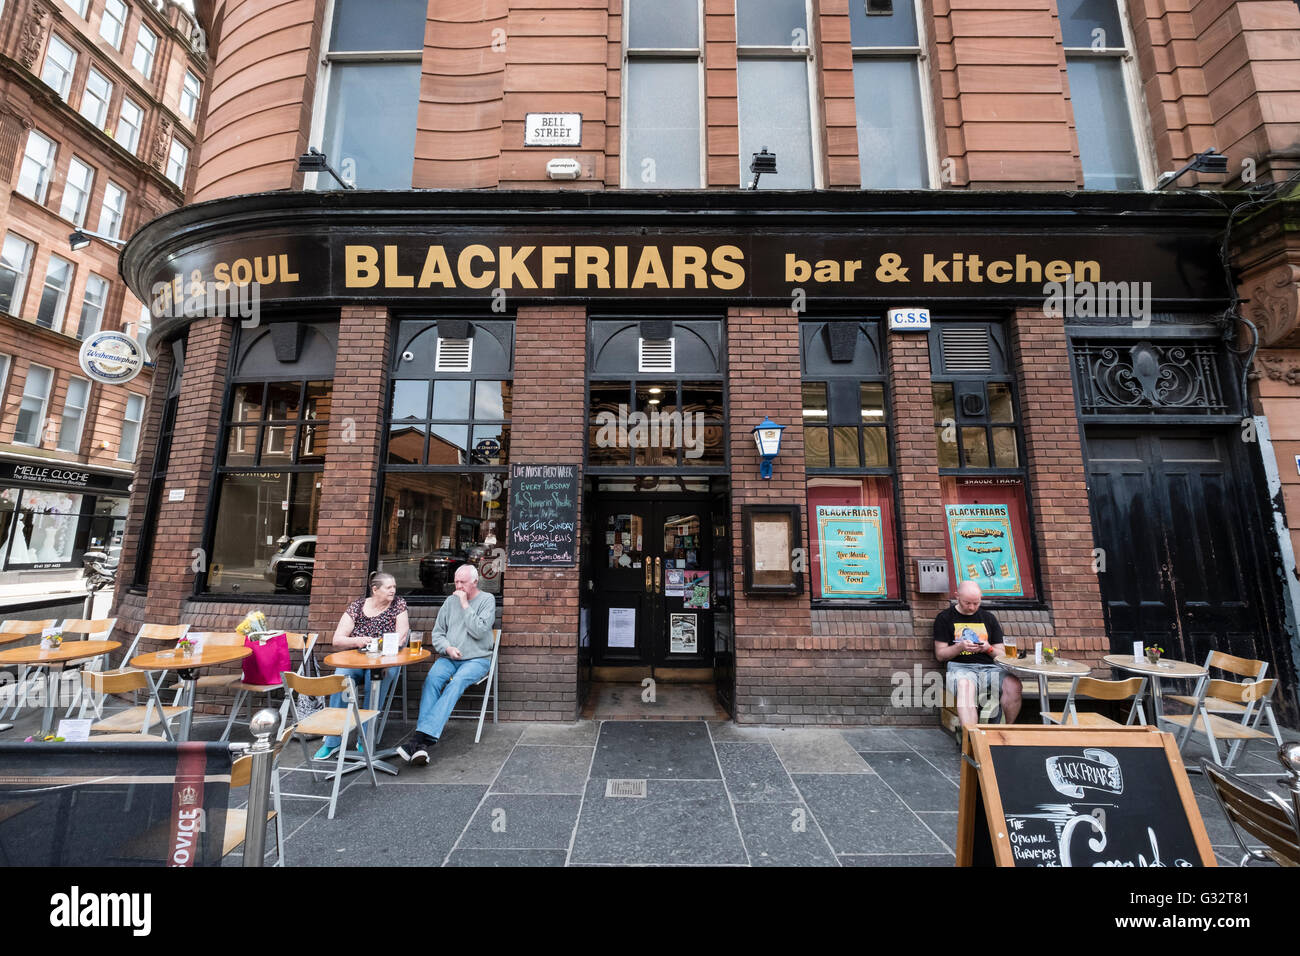 Blackfriars pub in Merchant City district of Glasgow, United Kingdom - Stock Image